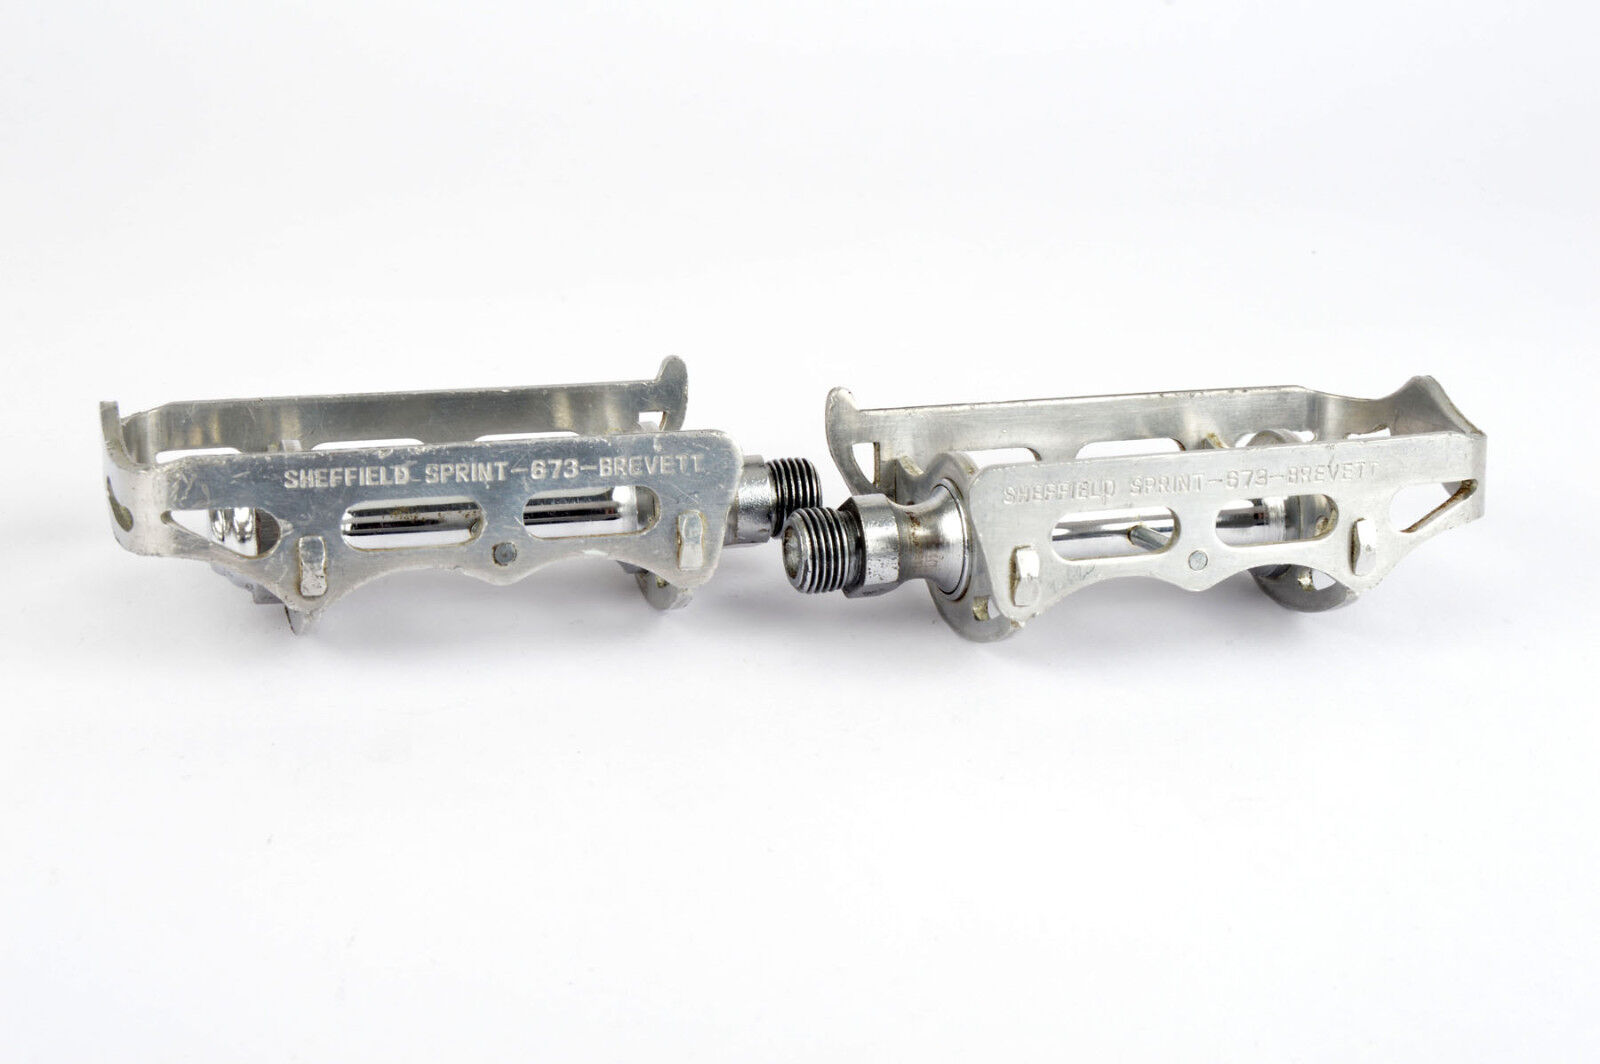 Sheffield Sprint 673 Pedals with english threading from the 1960s -70s